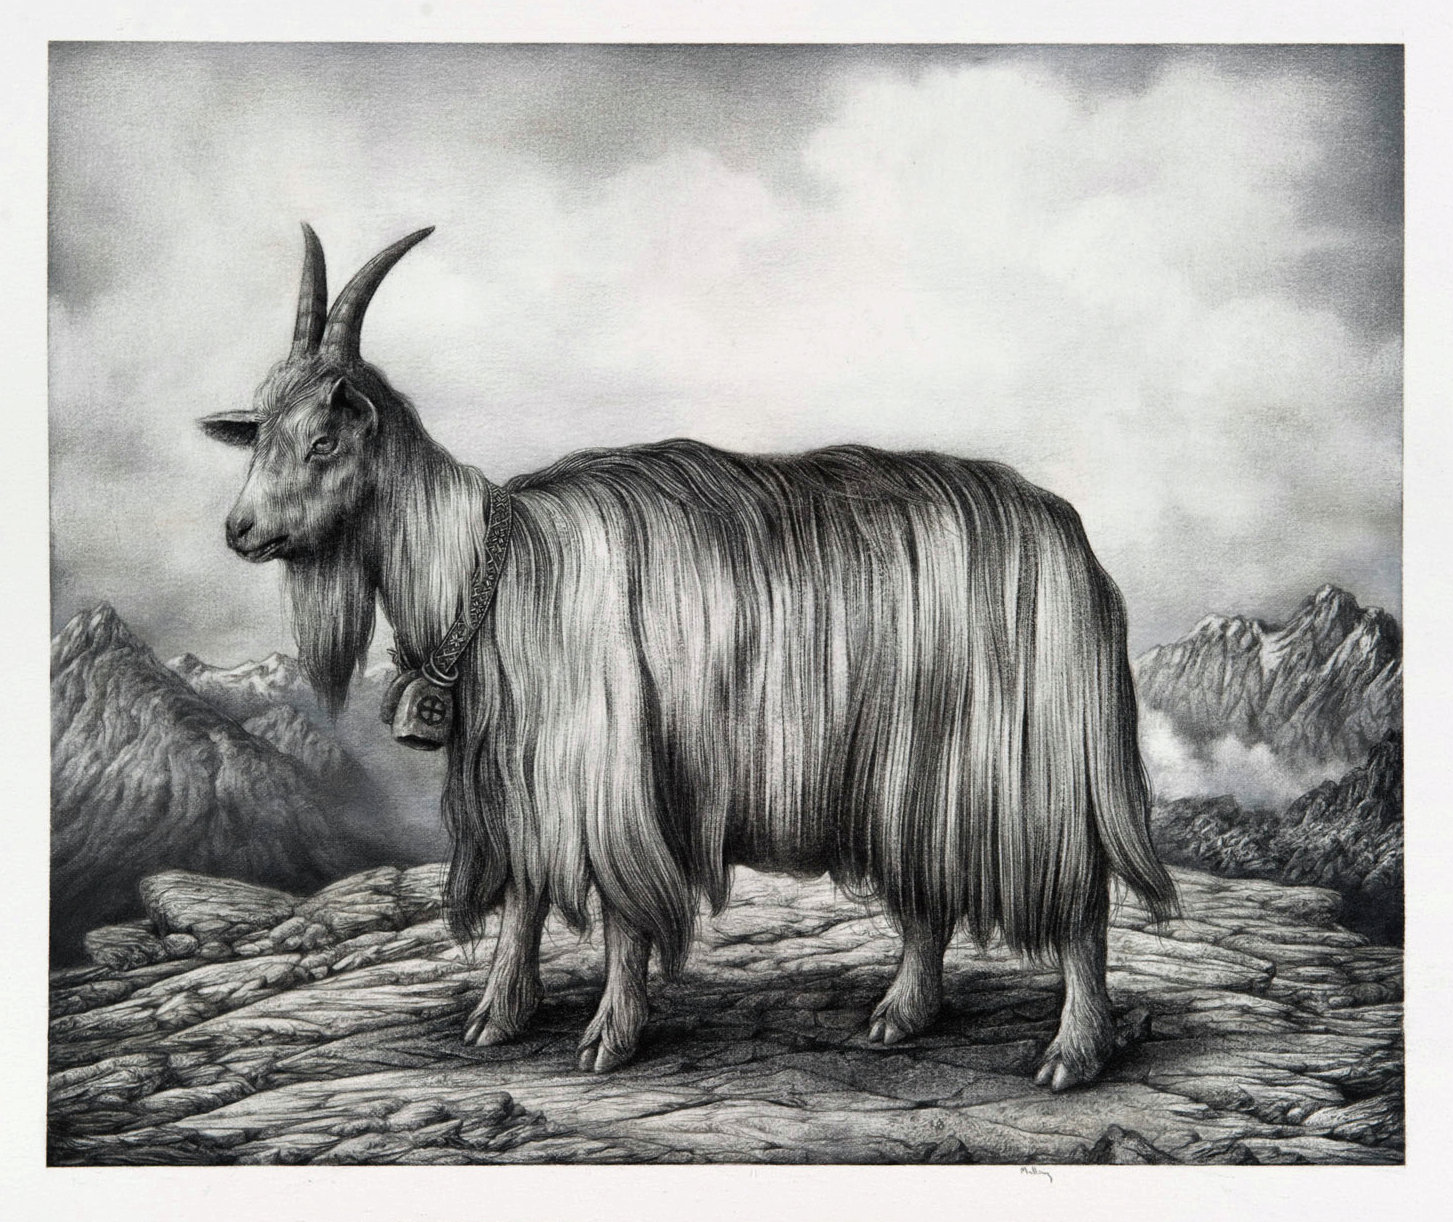 Charcoal Drawings by Sverre Malling